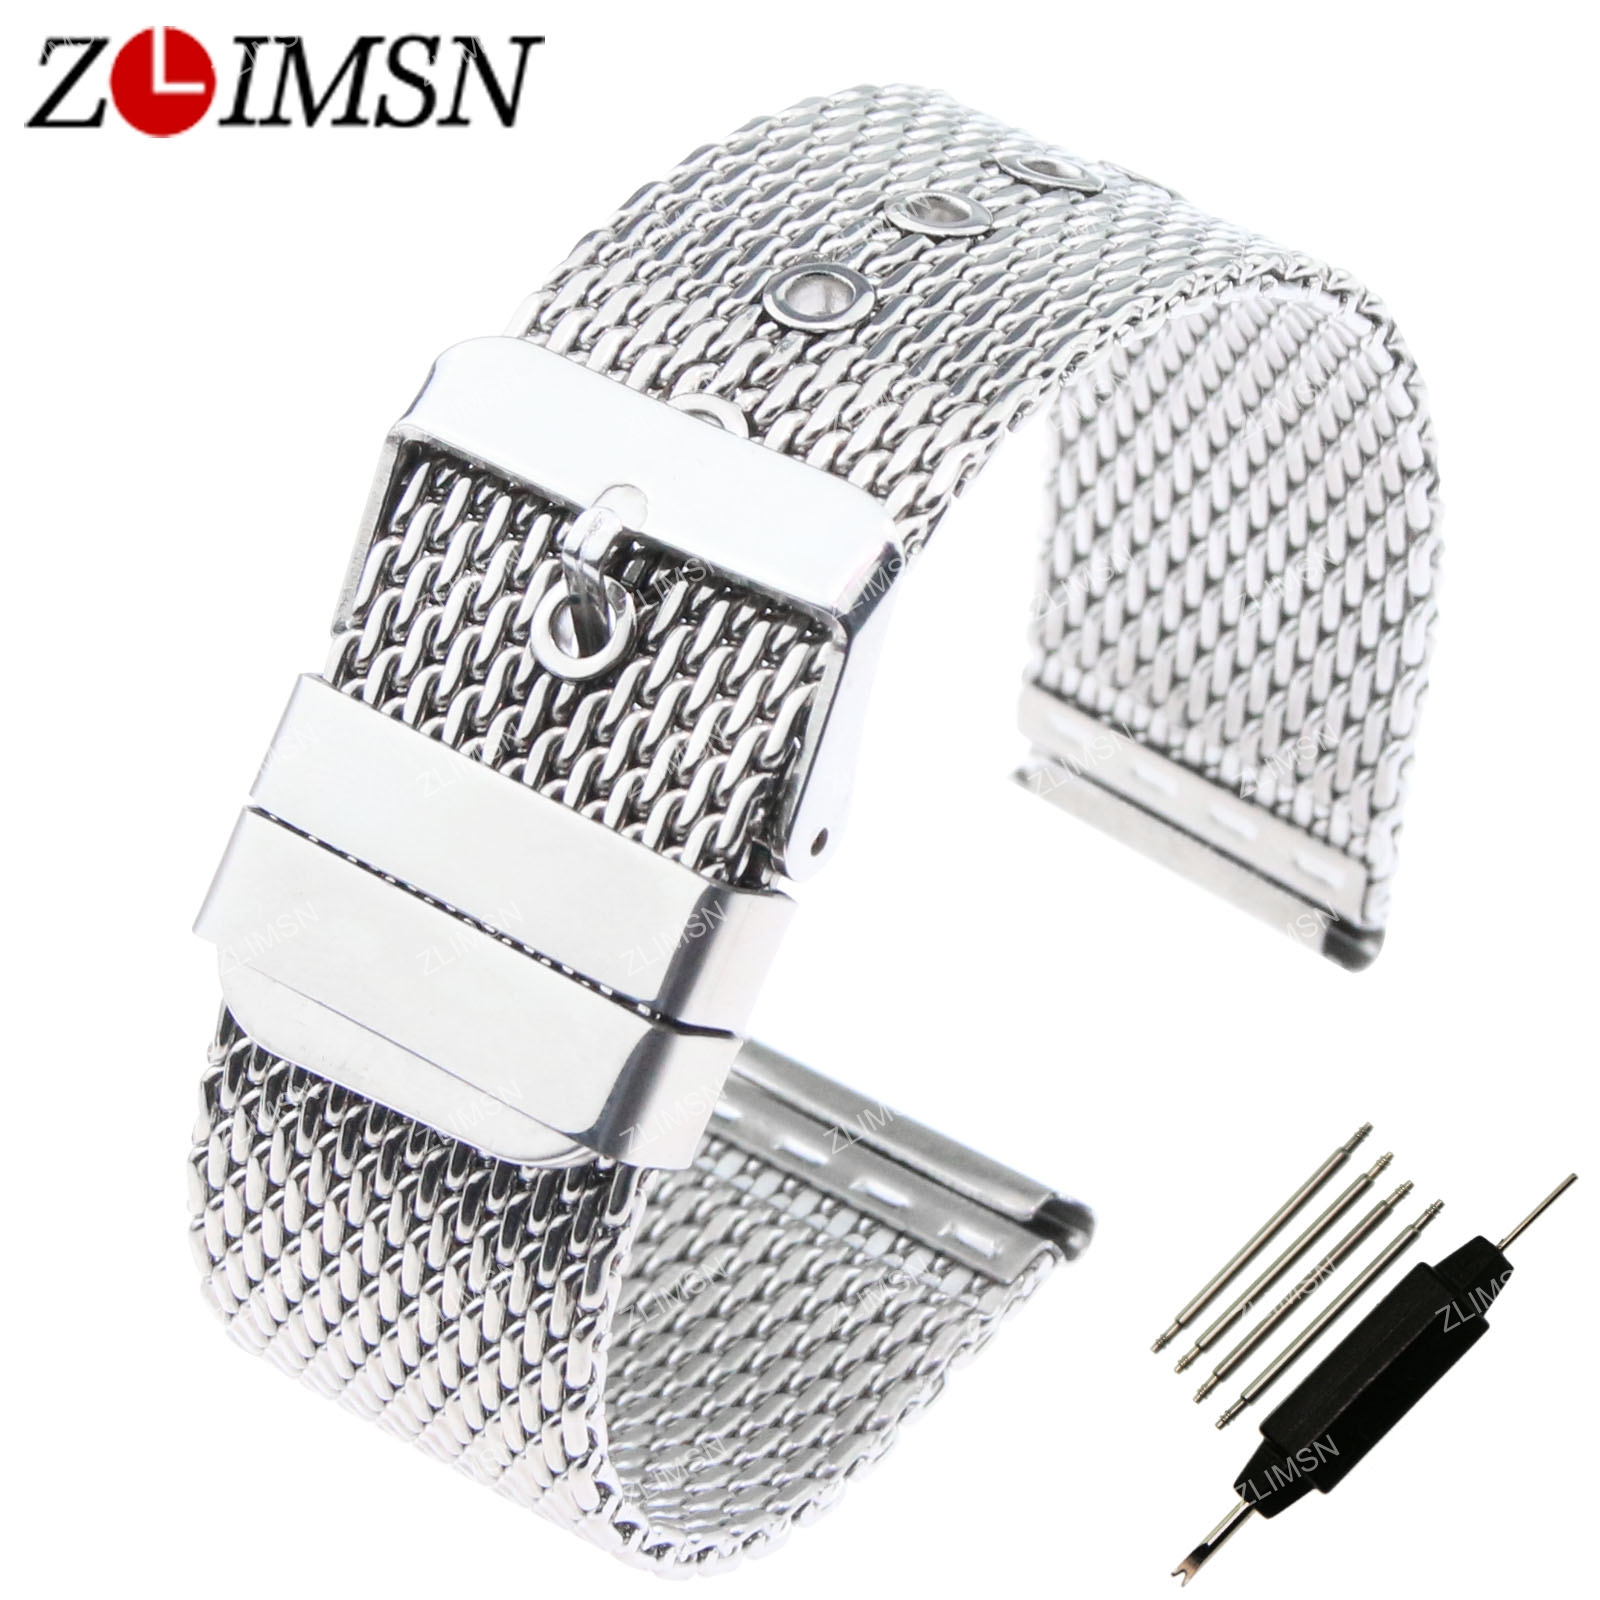 ZLIMSN Mesh Watchbands MenS Thick Watch Band Strap Stainless Steel Bracelet With Pin Buckle Relogio 18mm 20mm 22mm 24mm S20 high quality 20mm 22mm 24mm leather watch strap man watch straps black brown gray stainless steel buckle thick line watch band